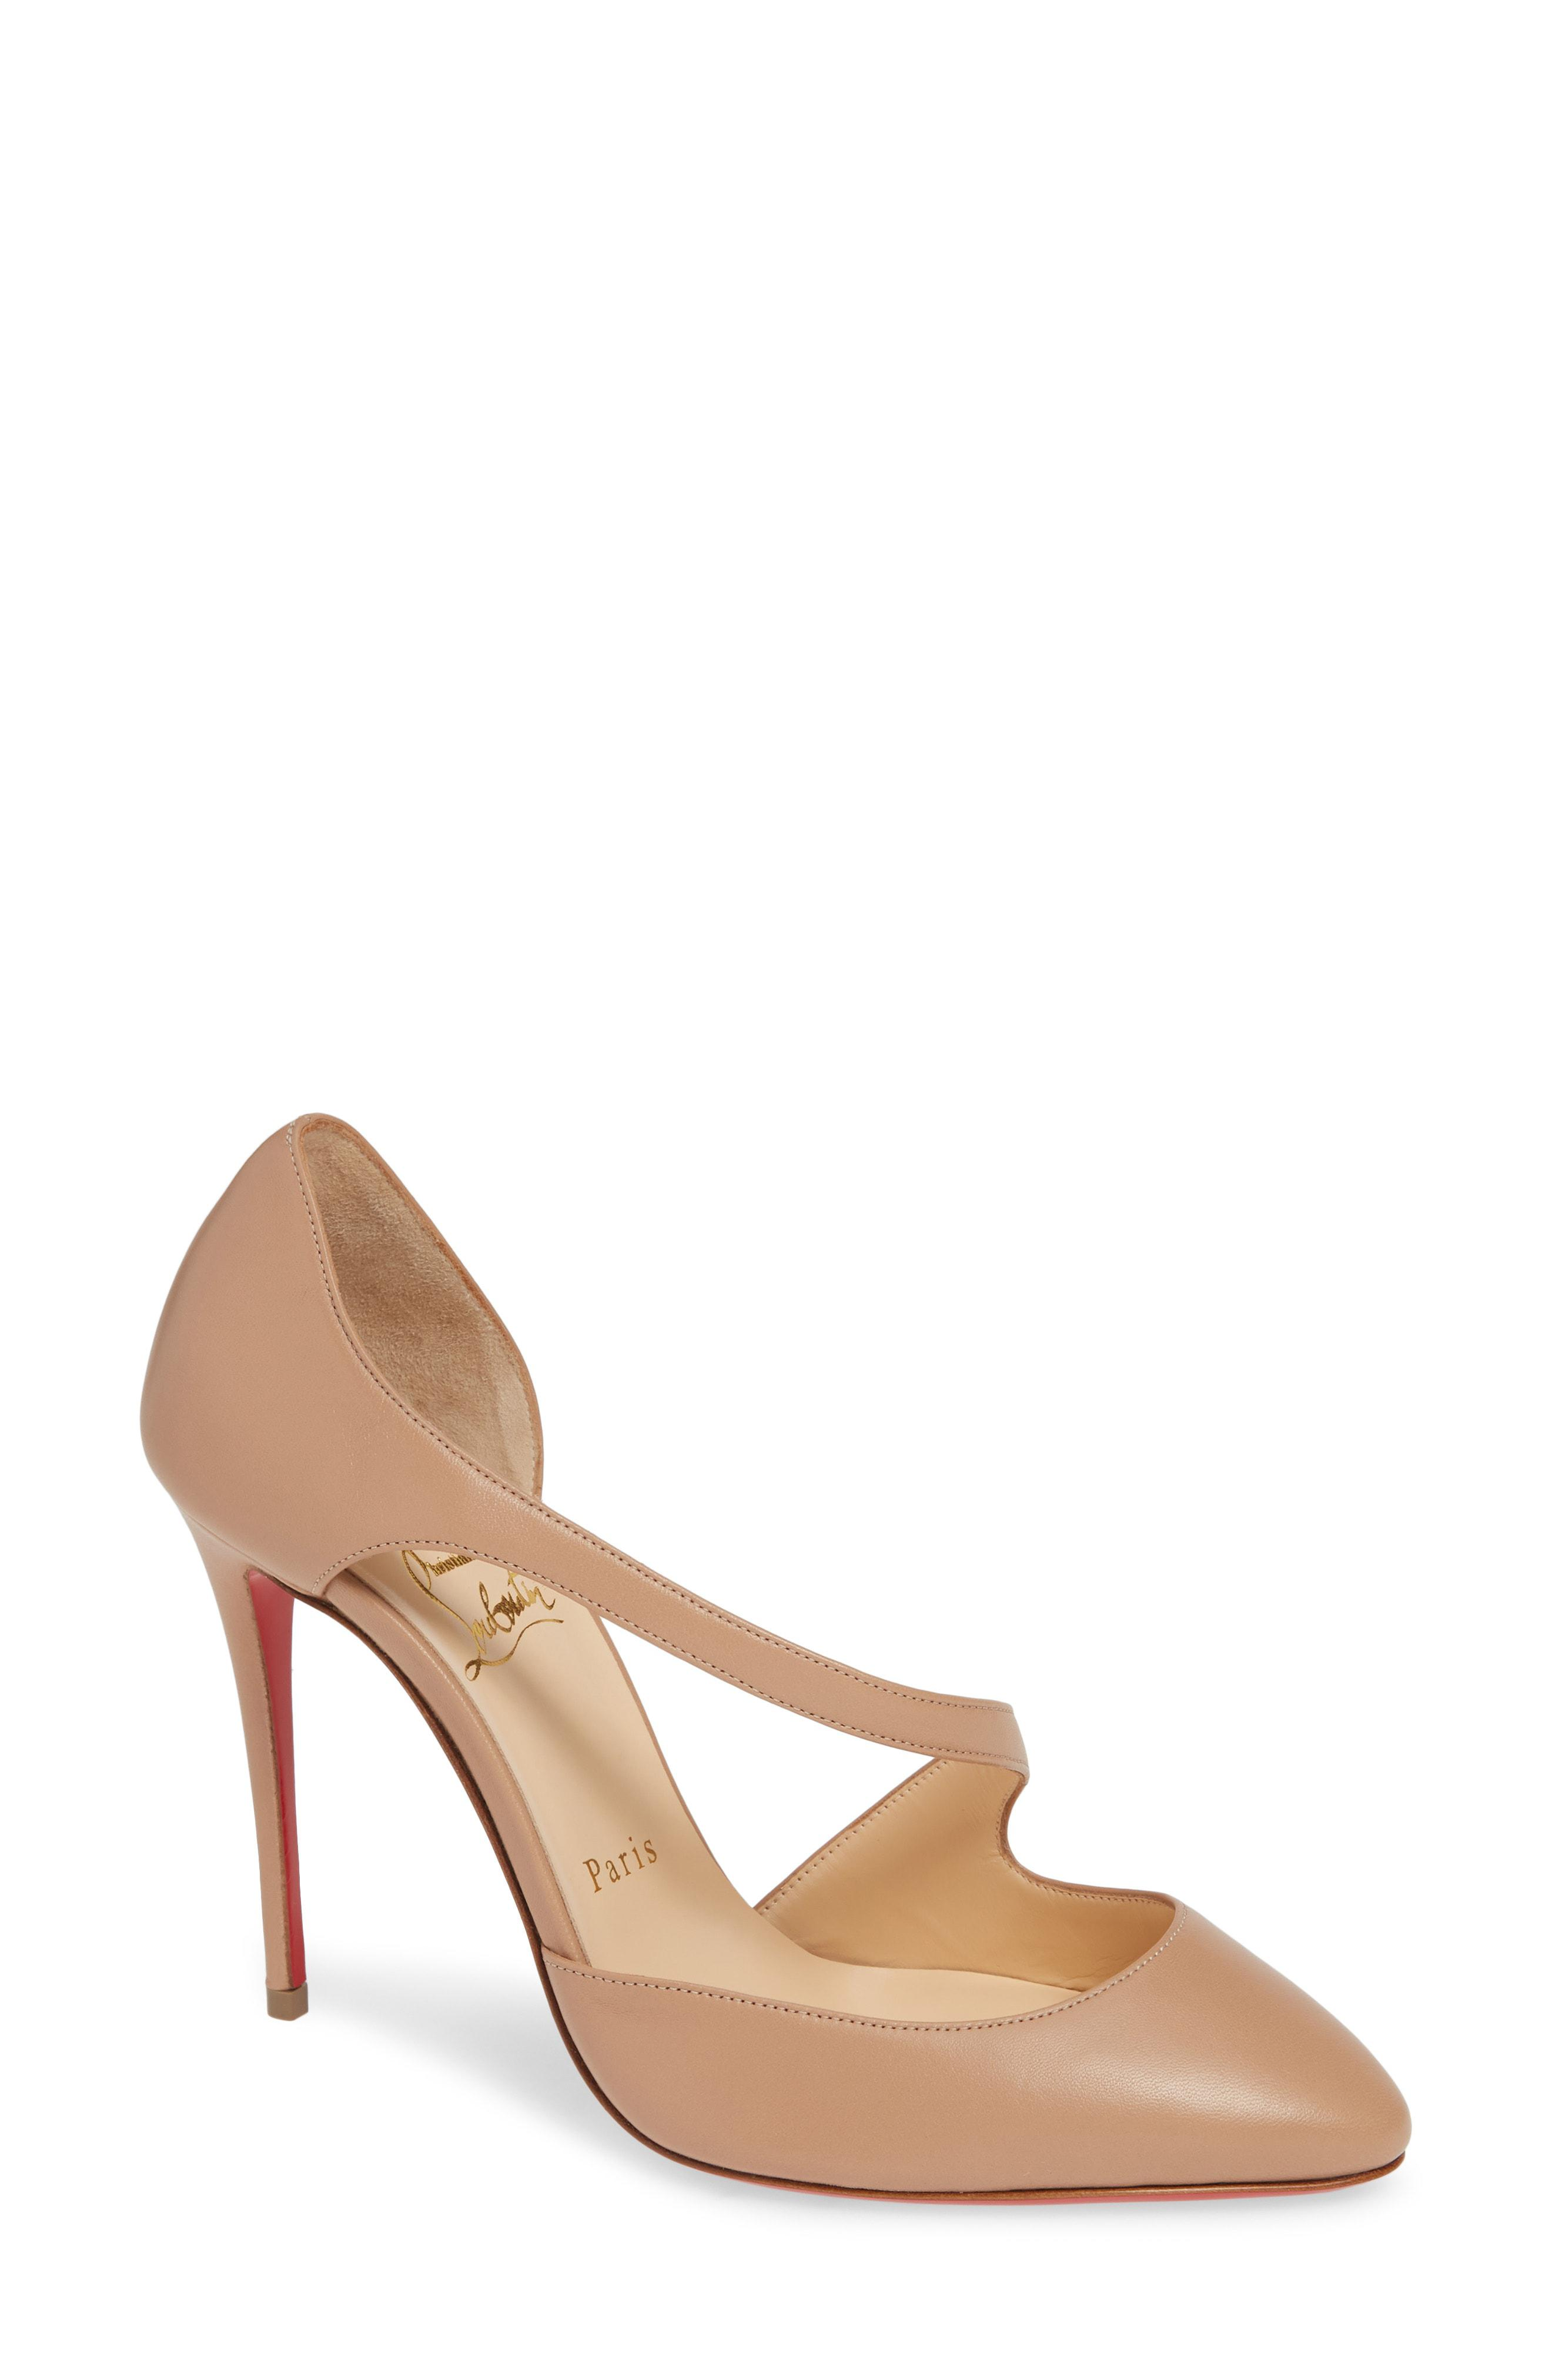 b3f9d327b3e Christian Louboutin Catchy One Strappy D'orsay Pump in Natural - Lyst